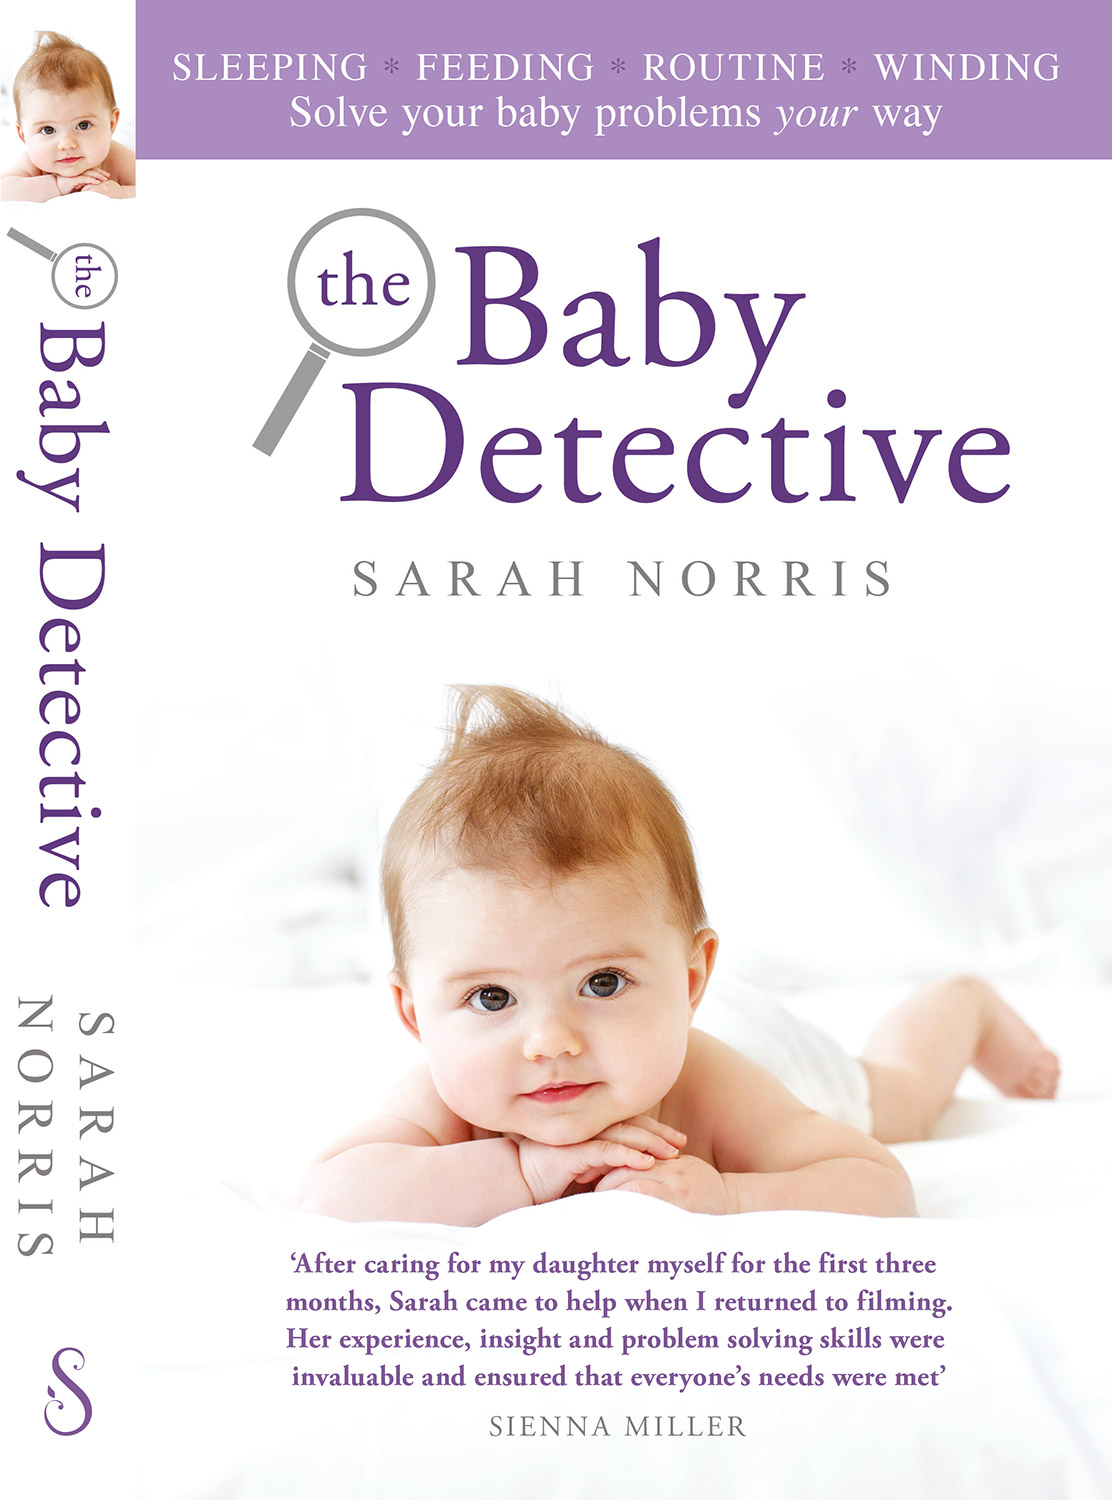 Baby-Detective-Book-Cover-Commercial-Photographer.jpg